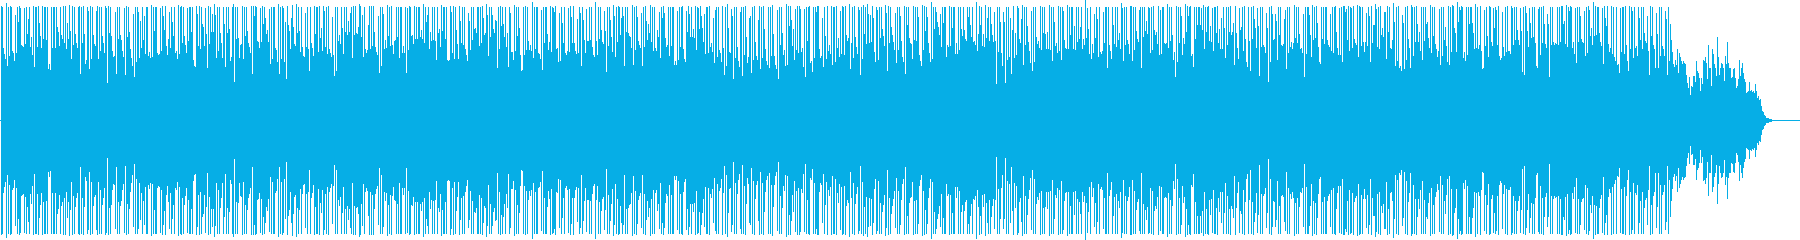 Smart synth sound's reproduced waveform